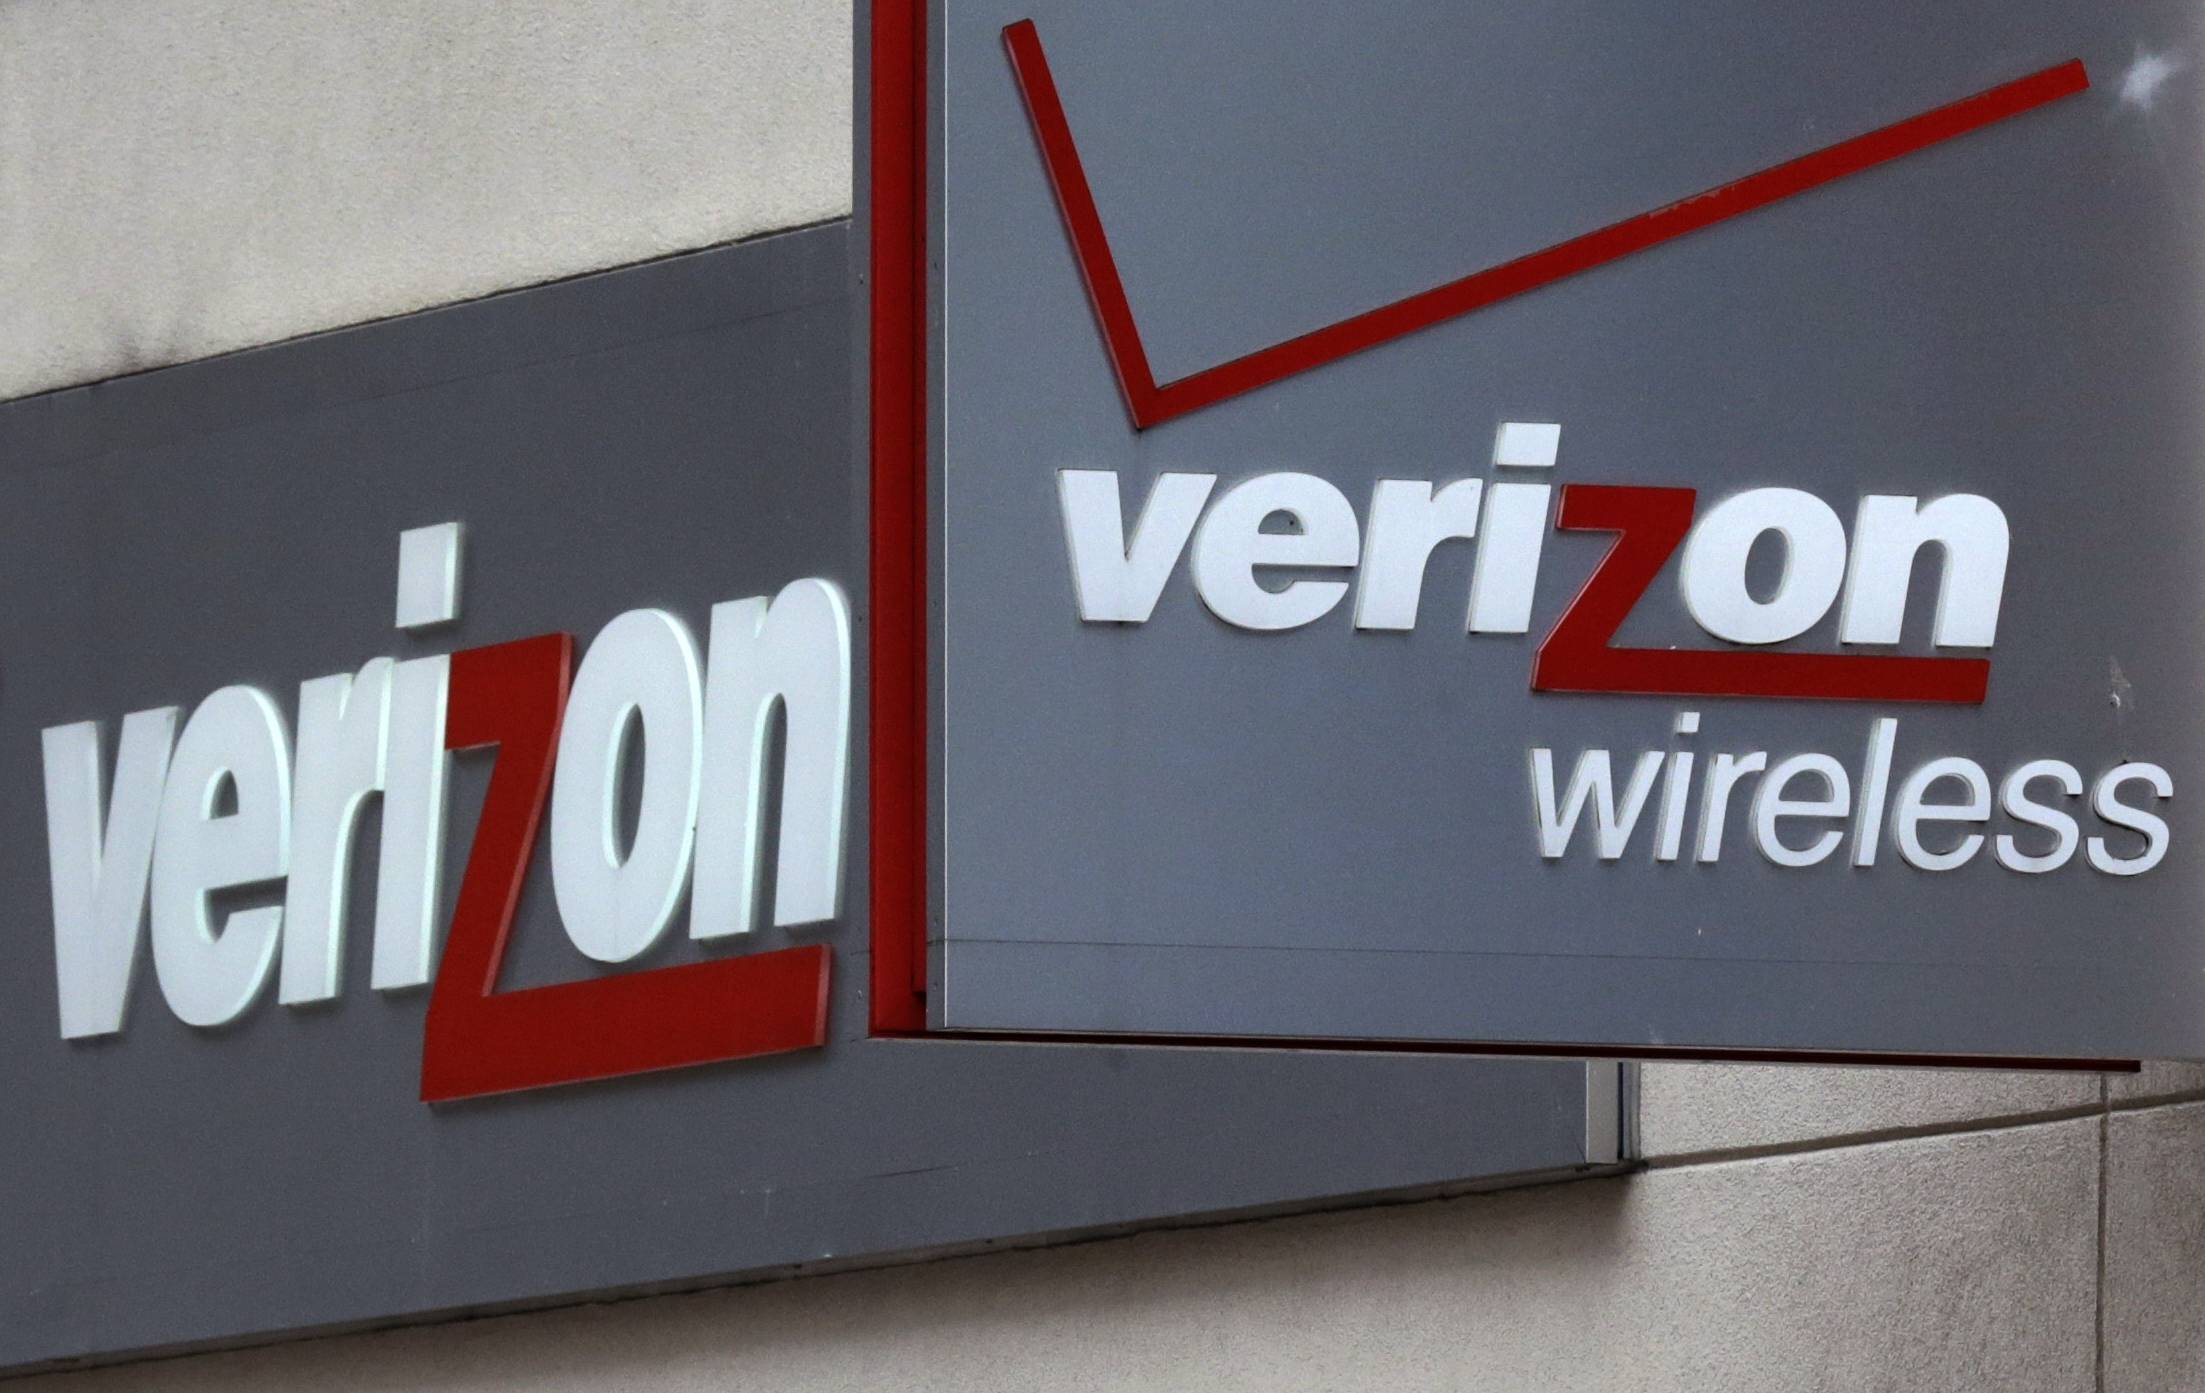 Associated Press Verizon is reporting that its second-quarter earnings nearly doubled after securing full ownership of Verizon Wireless. Profit jumped to $4.32 billion from $2.25 billion, or 78 cents per share.